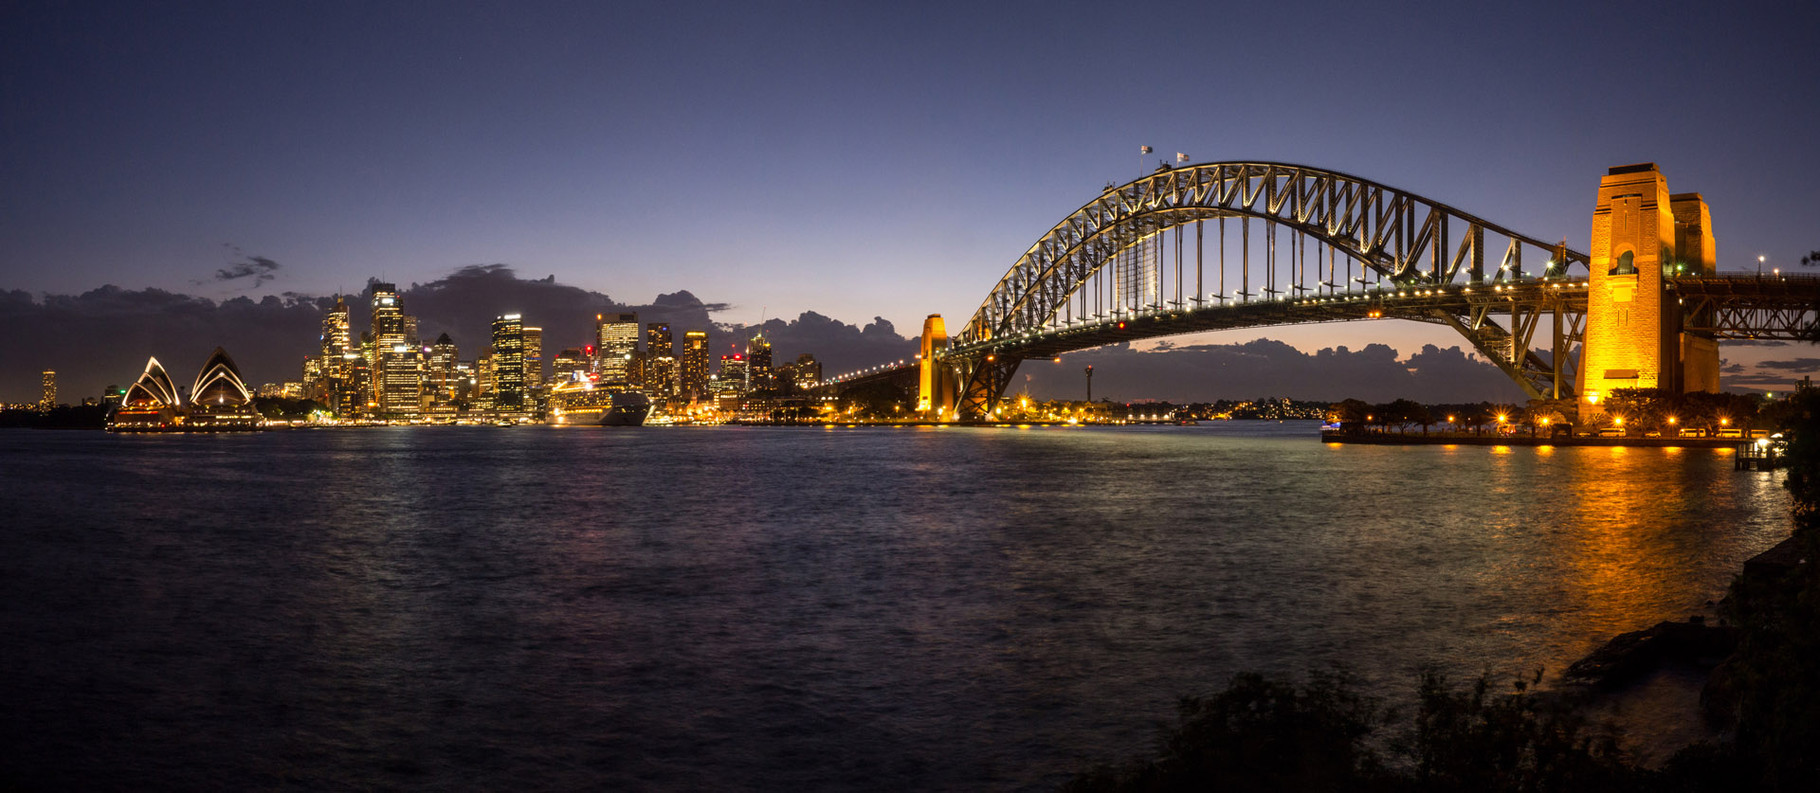 Panorama of Harbour bridge at dusk, Sydney [Australia, 2014]